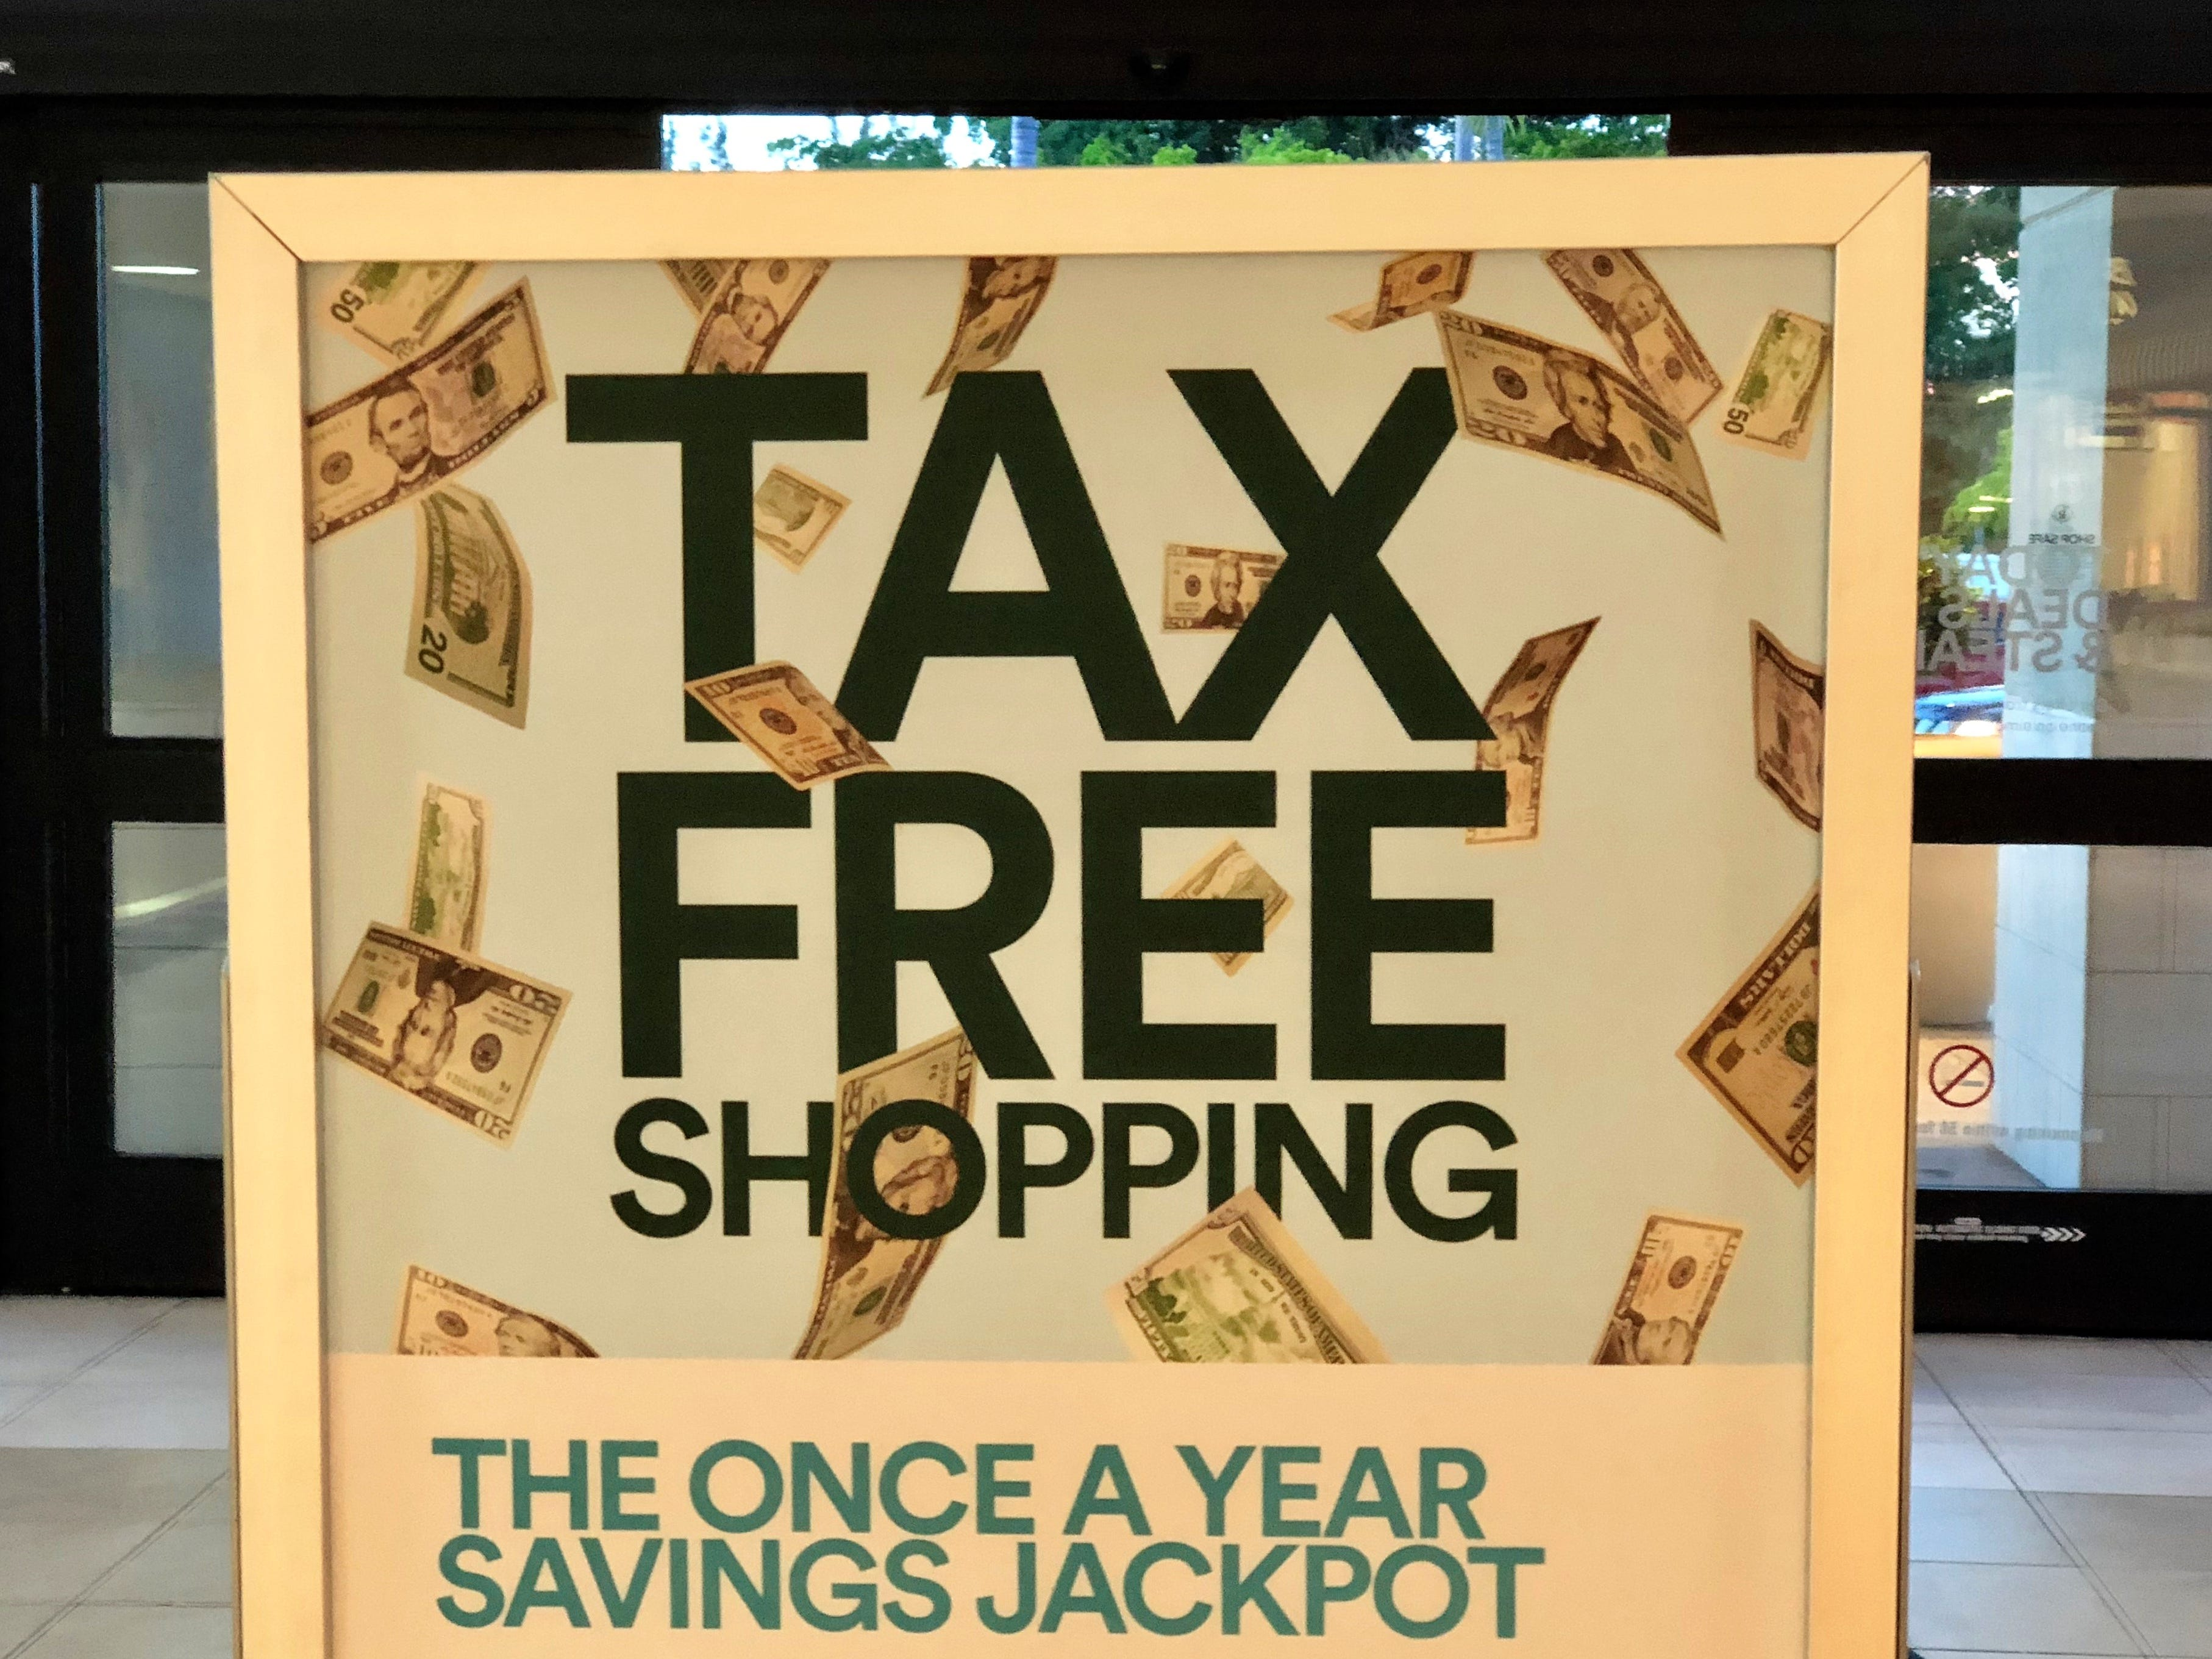 Sales tax holidays, sometimes called tax-free weekends, offer families preparing for the new school year a chance to save.